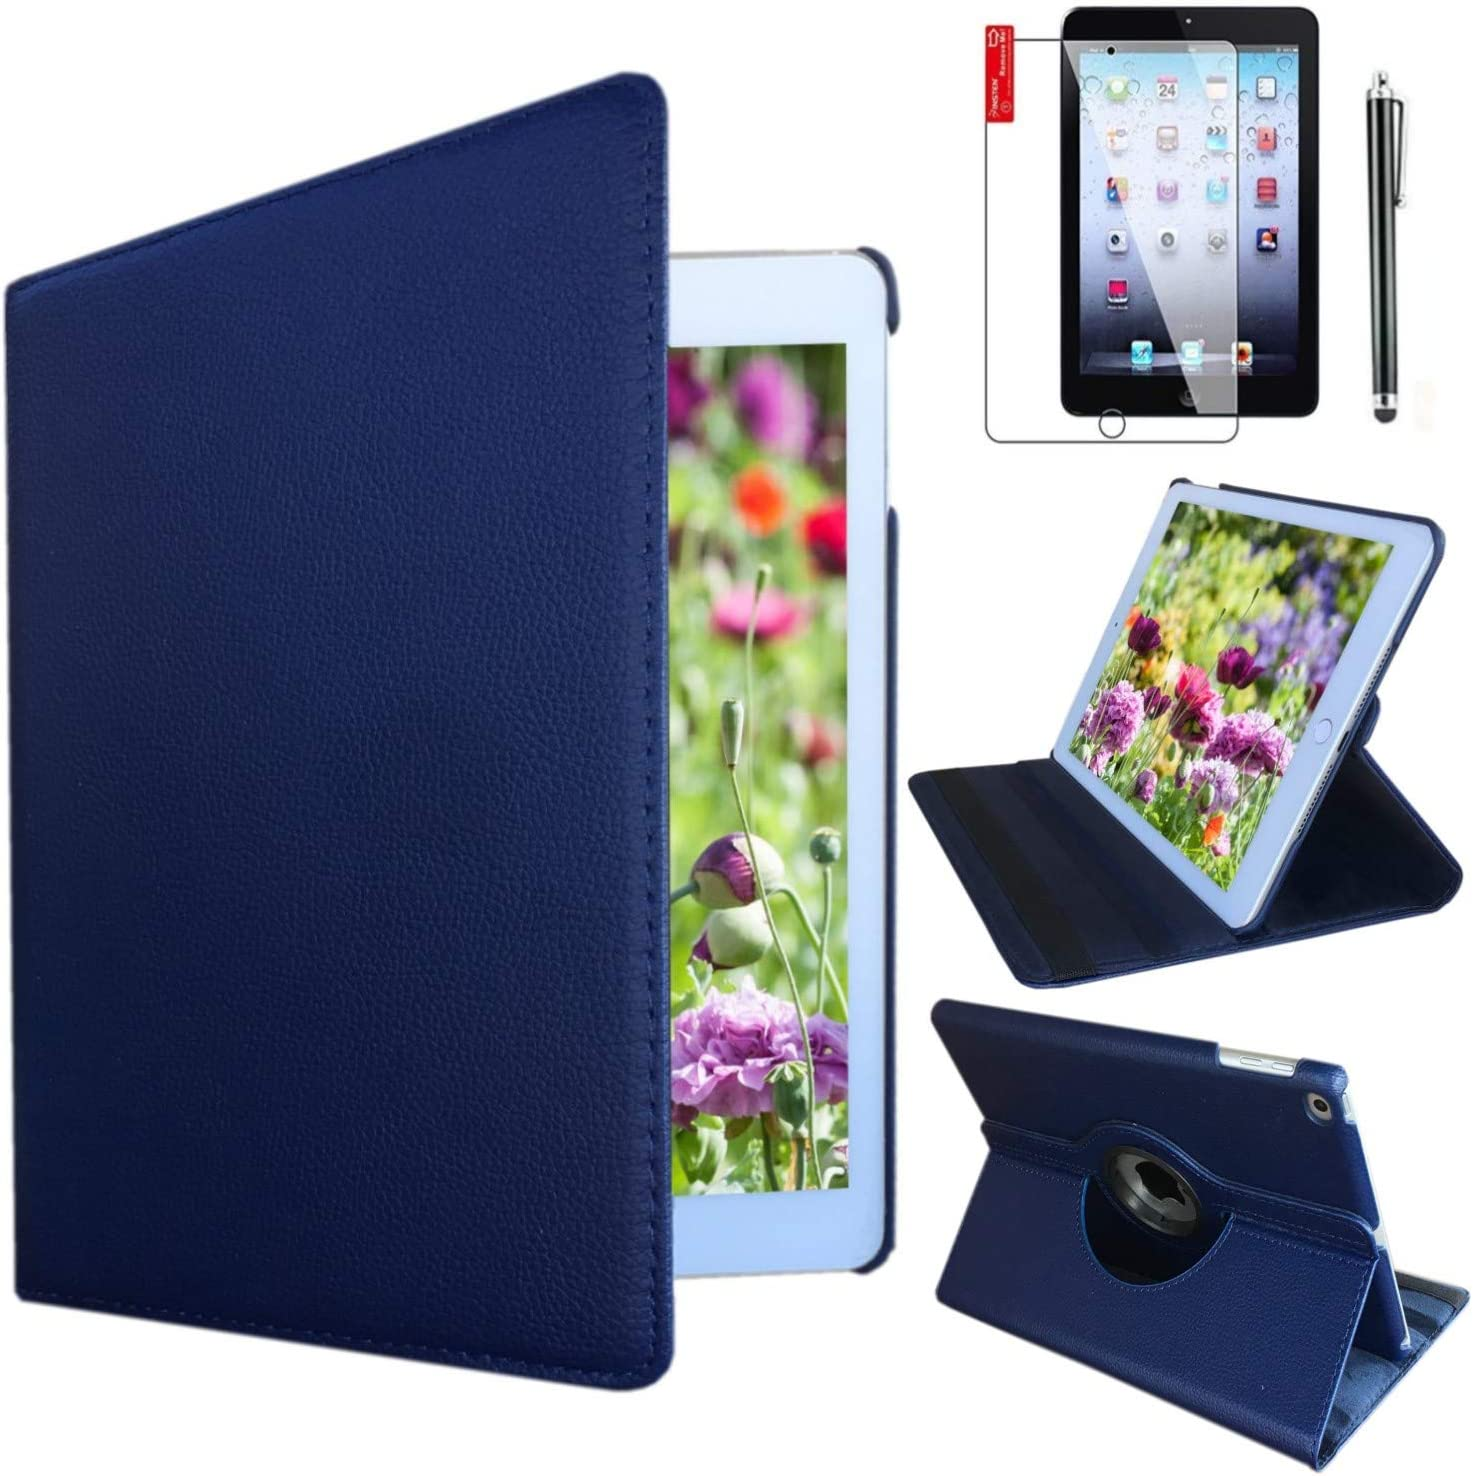 iPad Air 1st Generation case Compatible Models A1474 A1475A1476 MD785LL/A MD876LL/A 360 Rotating Stand with Wake Up/Sleep Function (Royal Blue)